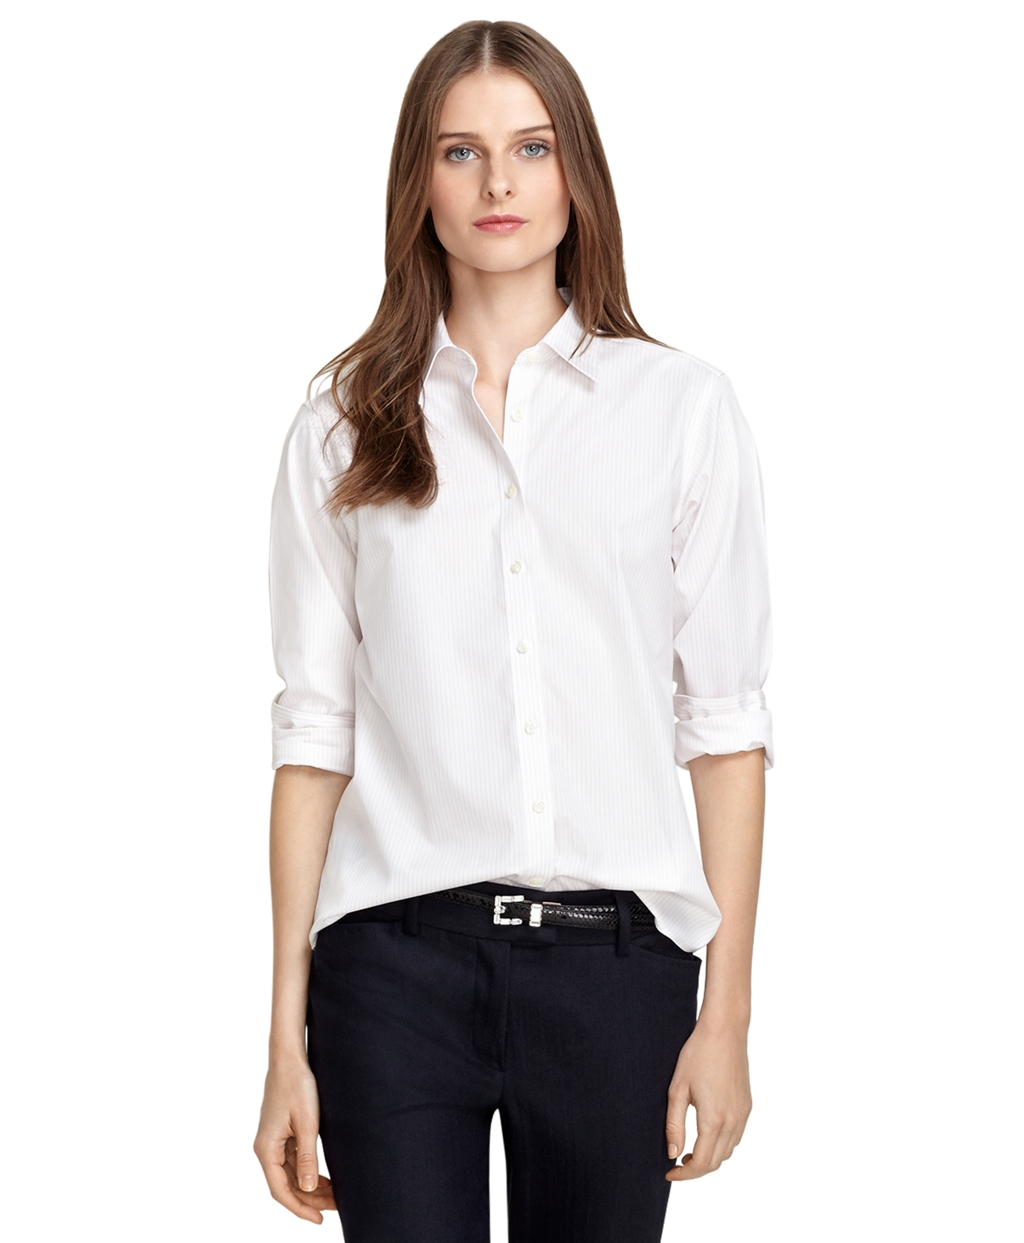 Brooks brothers non iron classic fit pinstripe dress shirt for Brooks brothers dress shirt fit guide